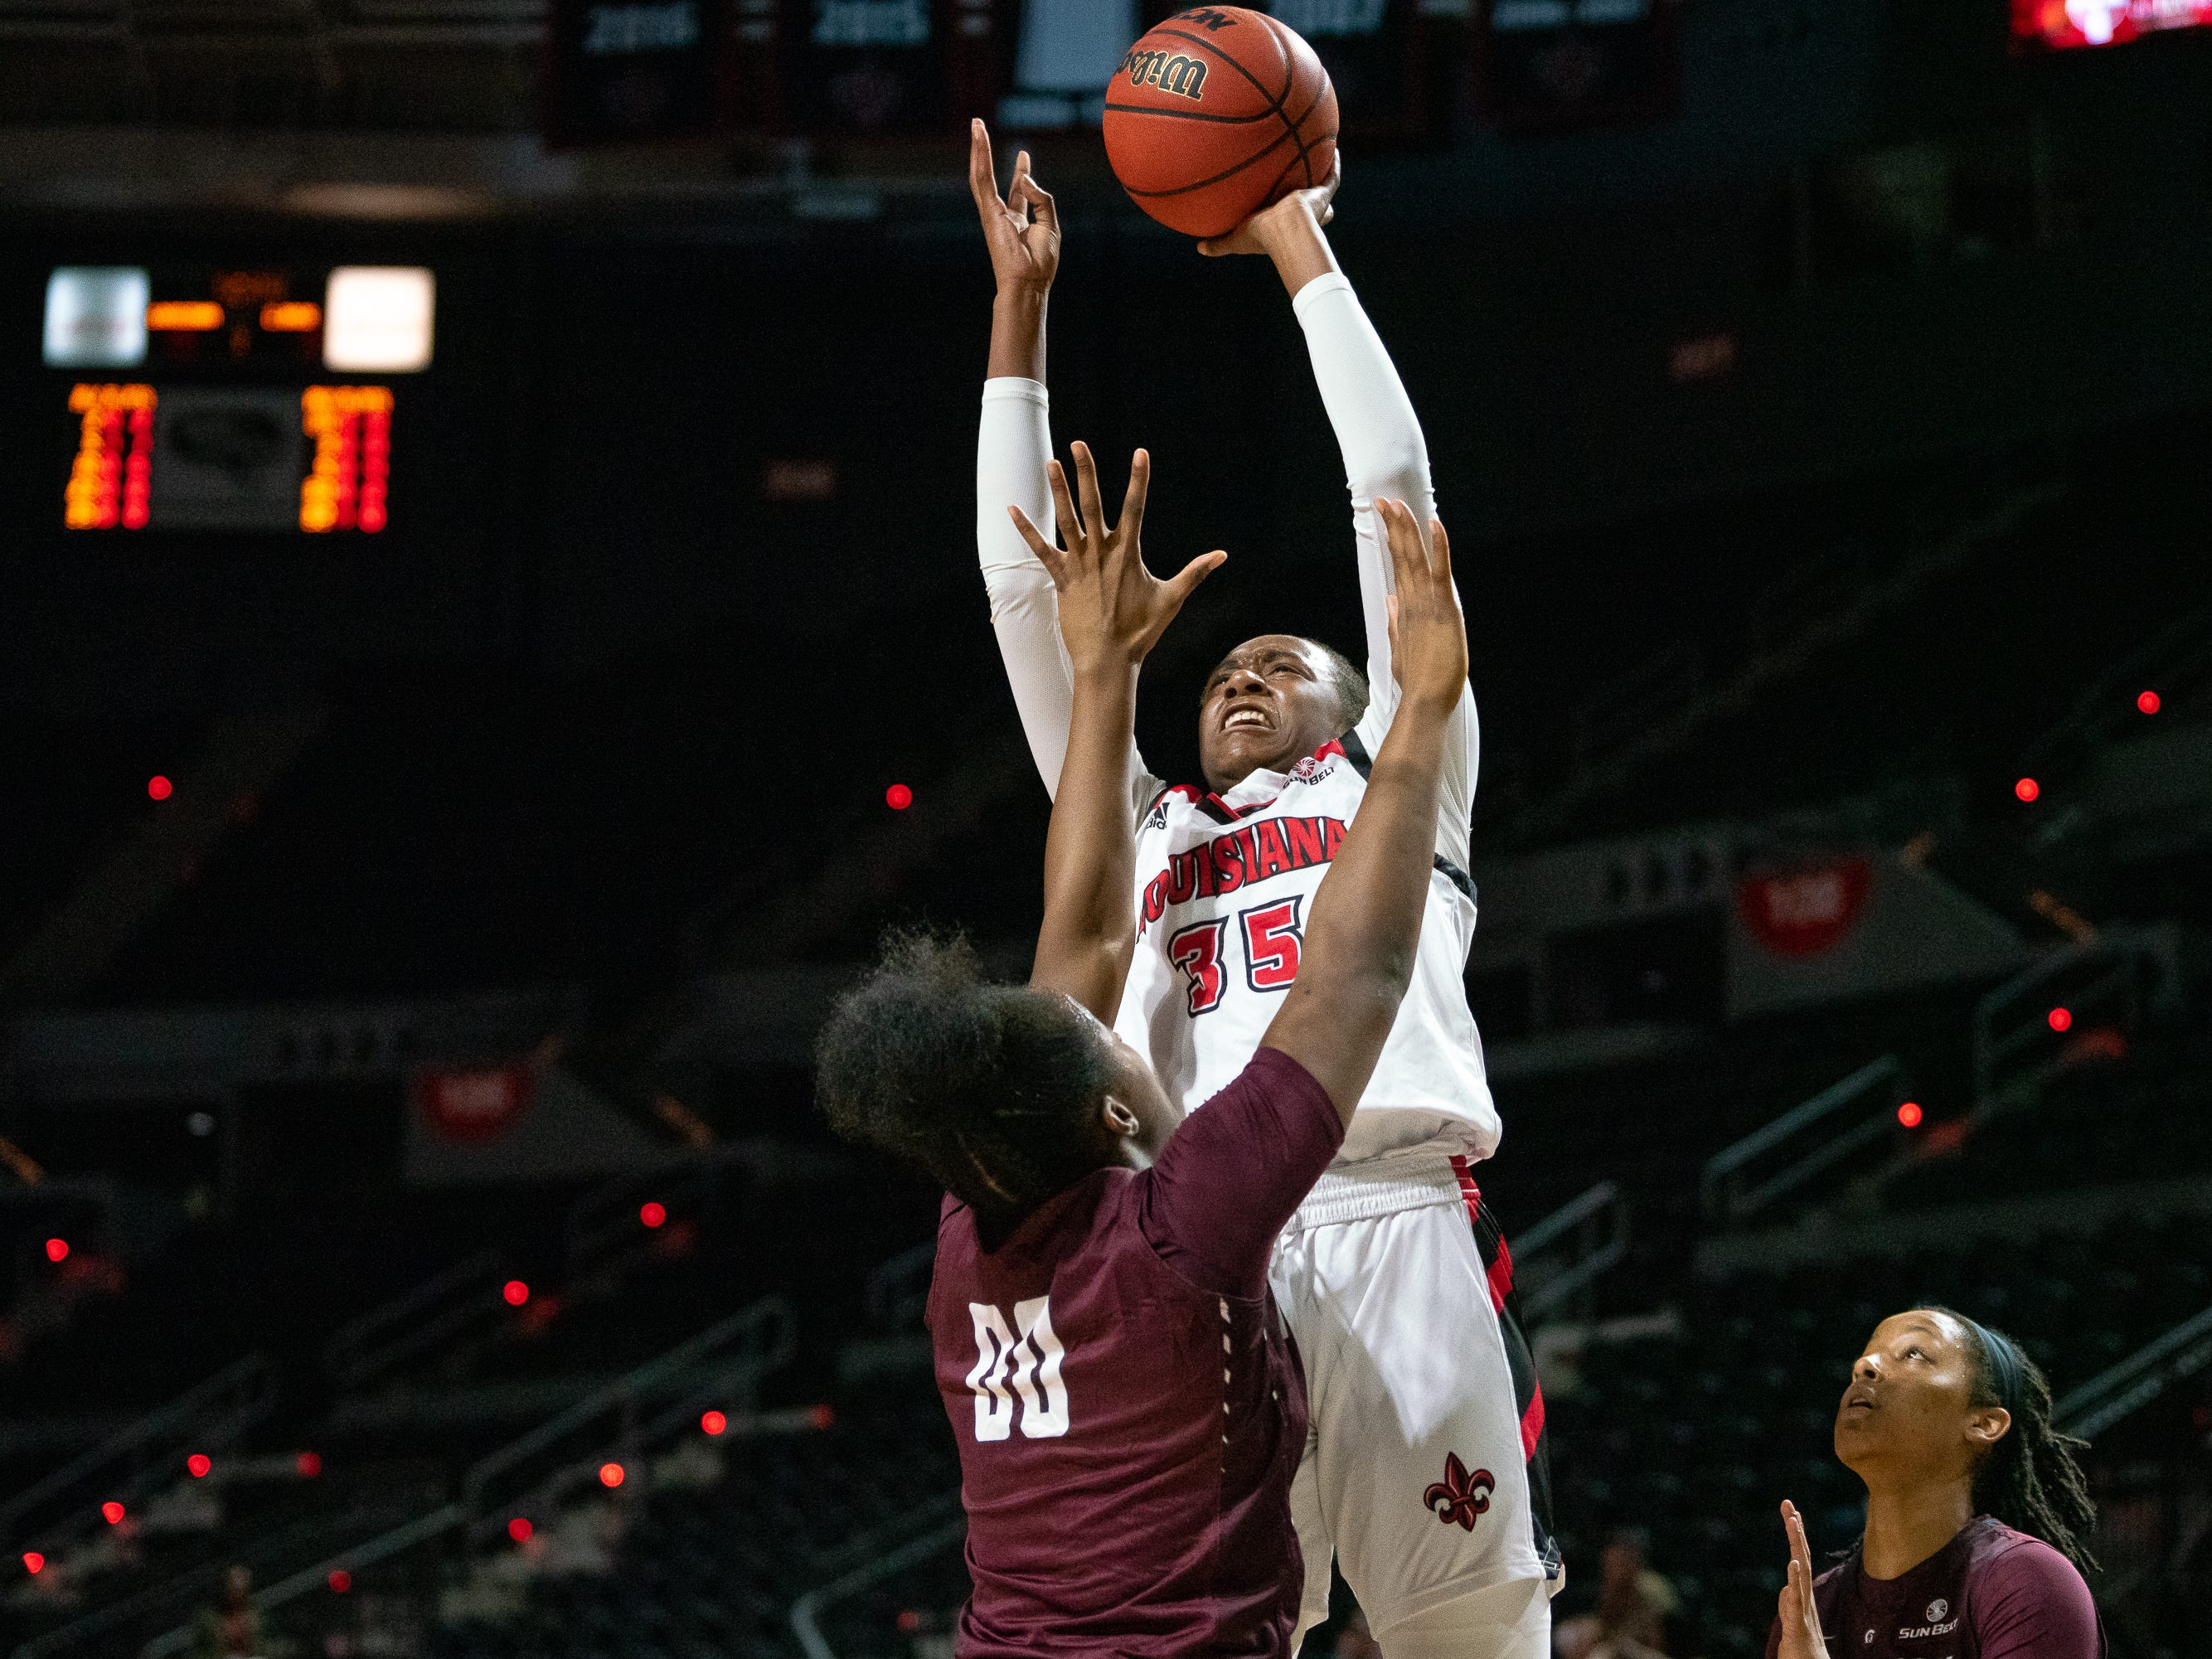 UL's Ty'Reona Doucet scores over a defender as the Ragin' Cajuns take on the Little Rock Trojans at the Cajundome on Thursday, March 7, 2019.